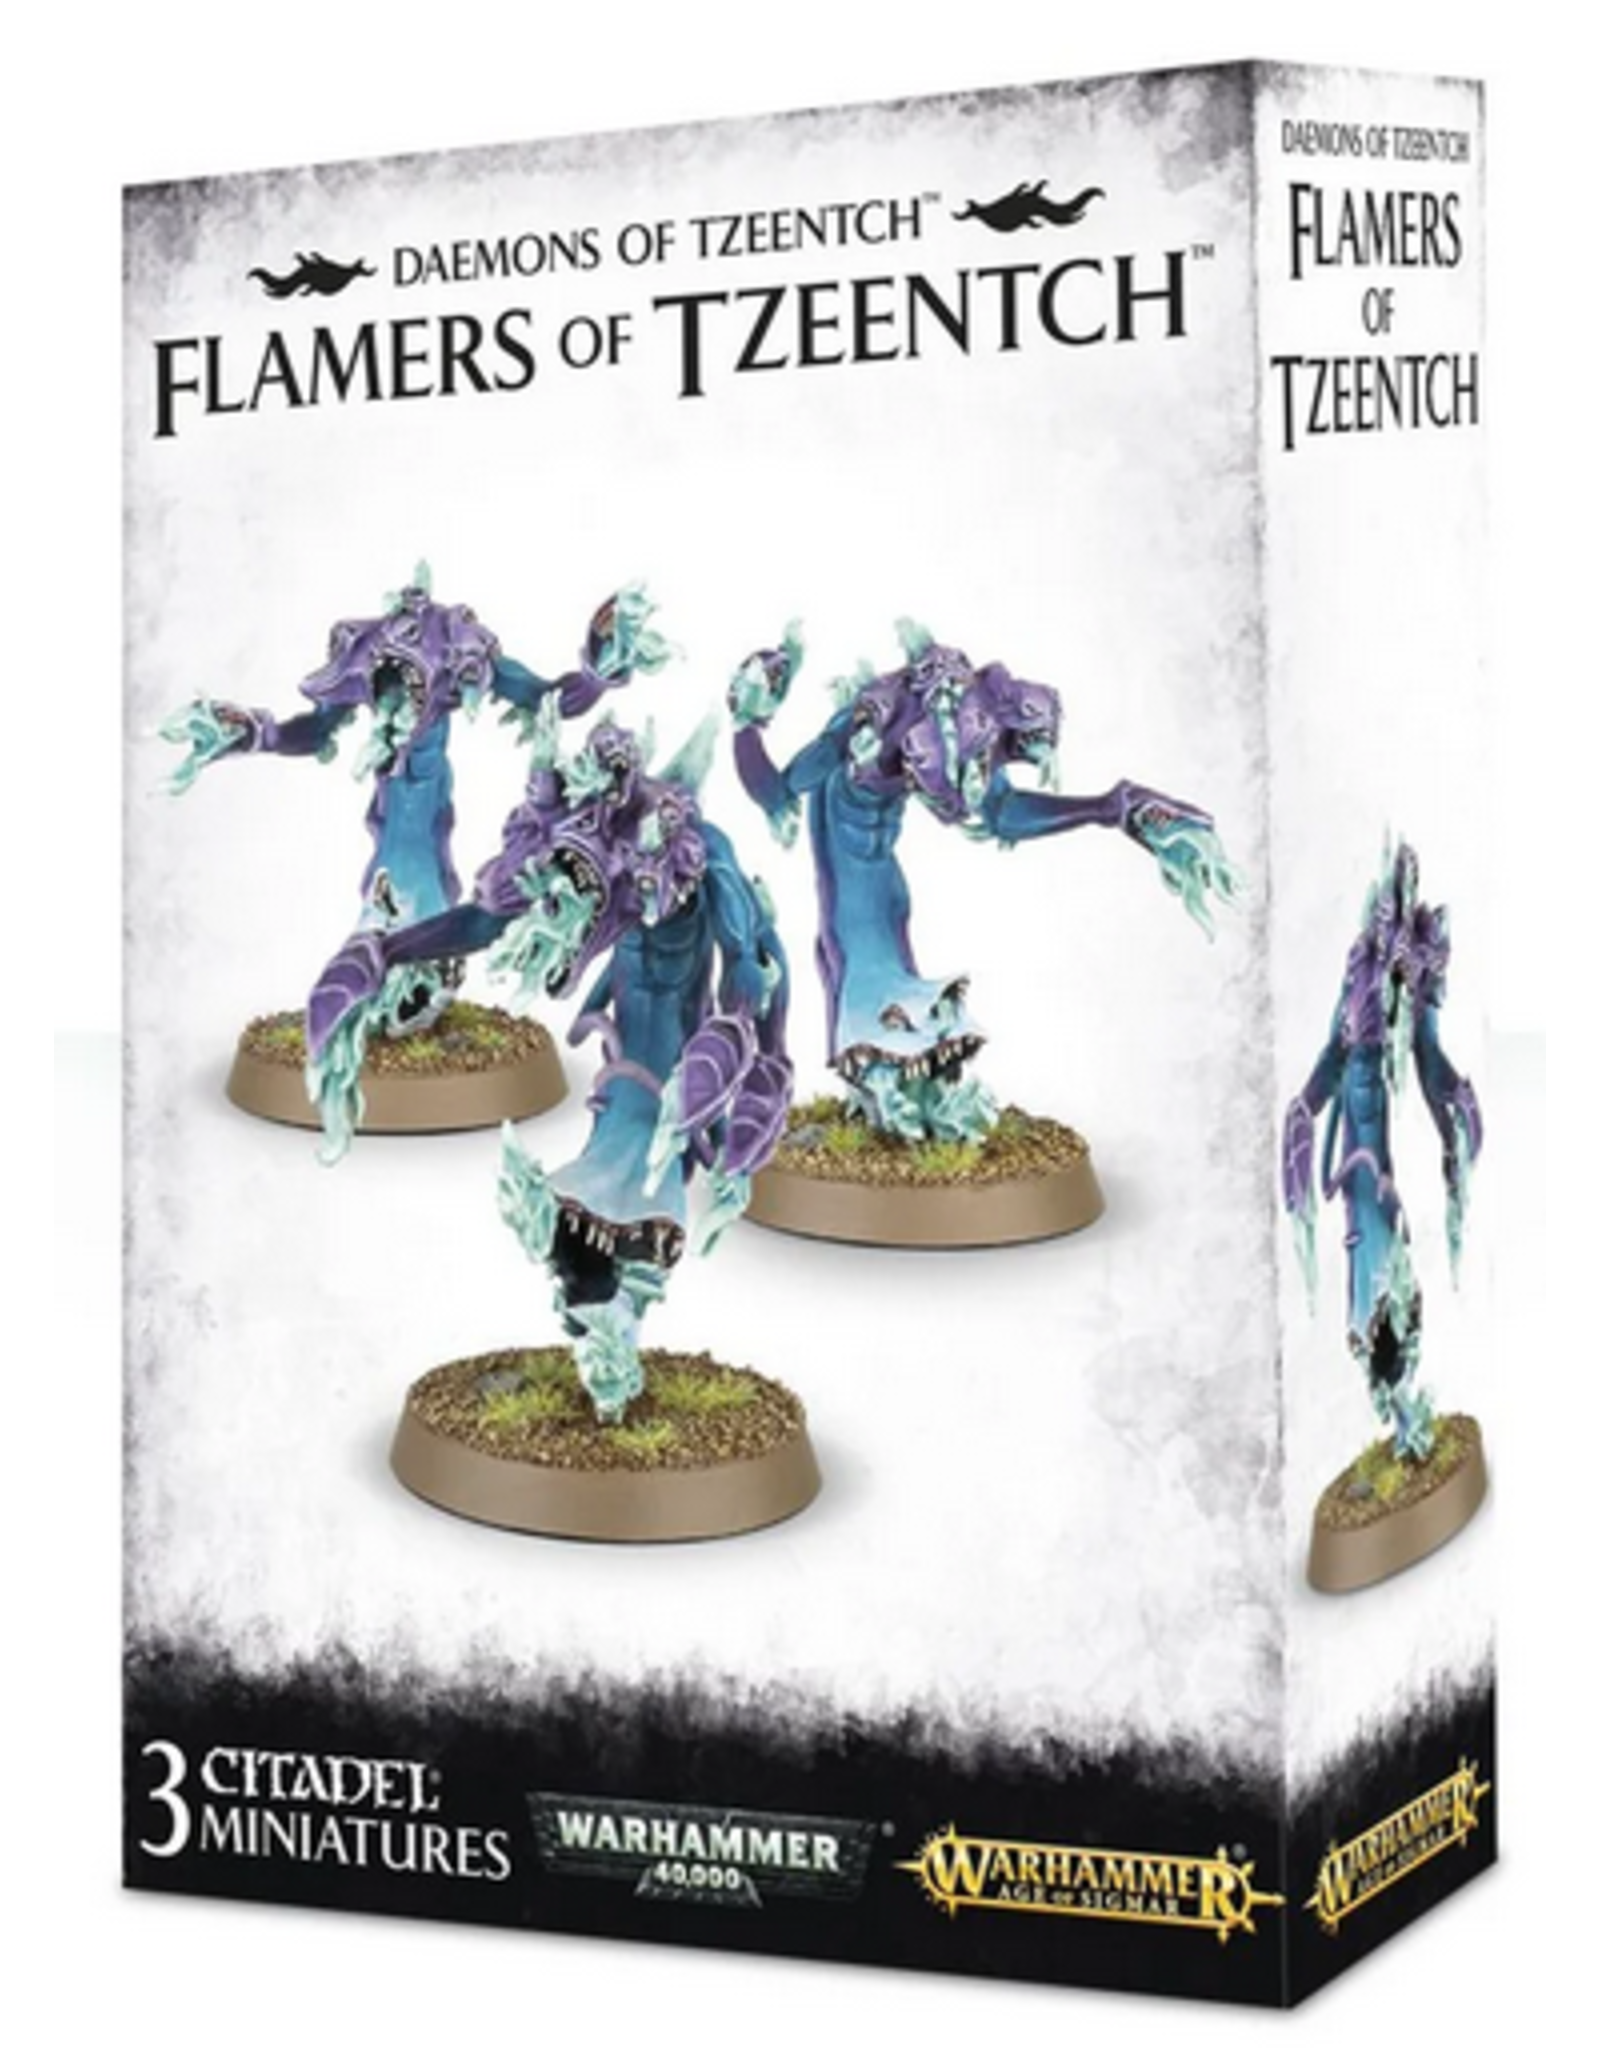 Flamers of Tzeentch (AOS)